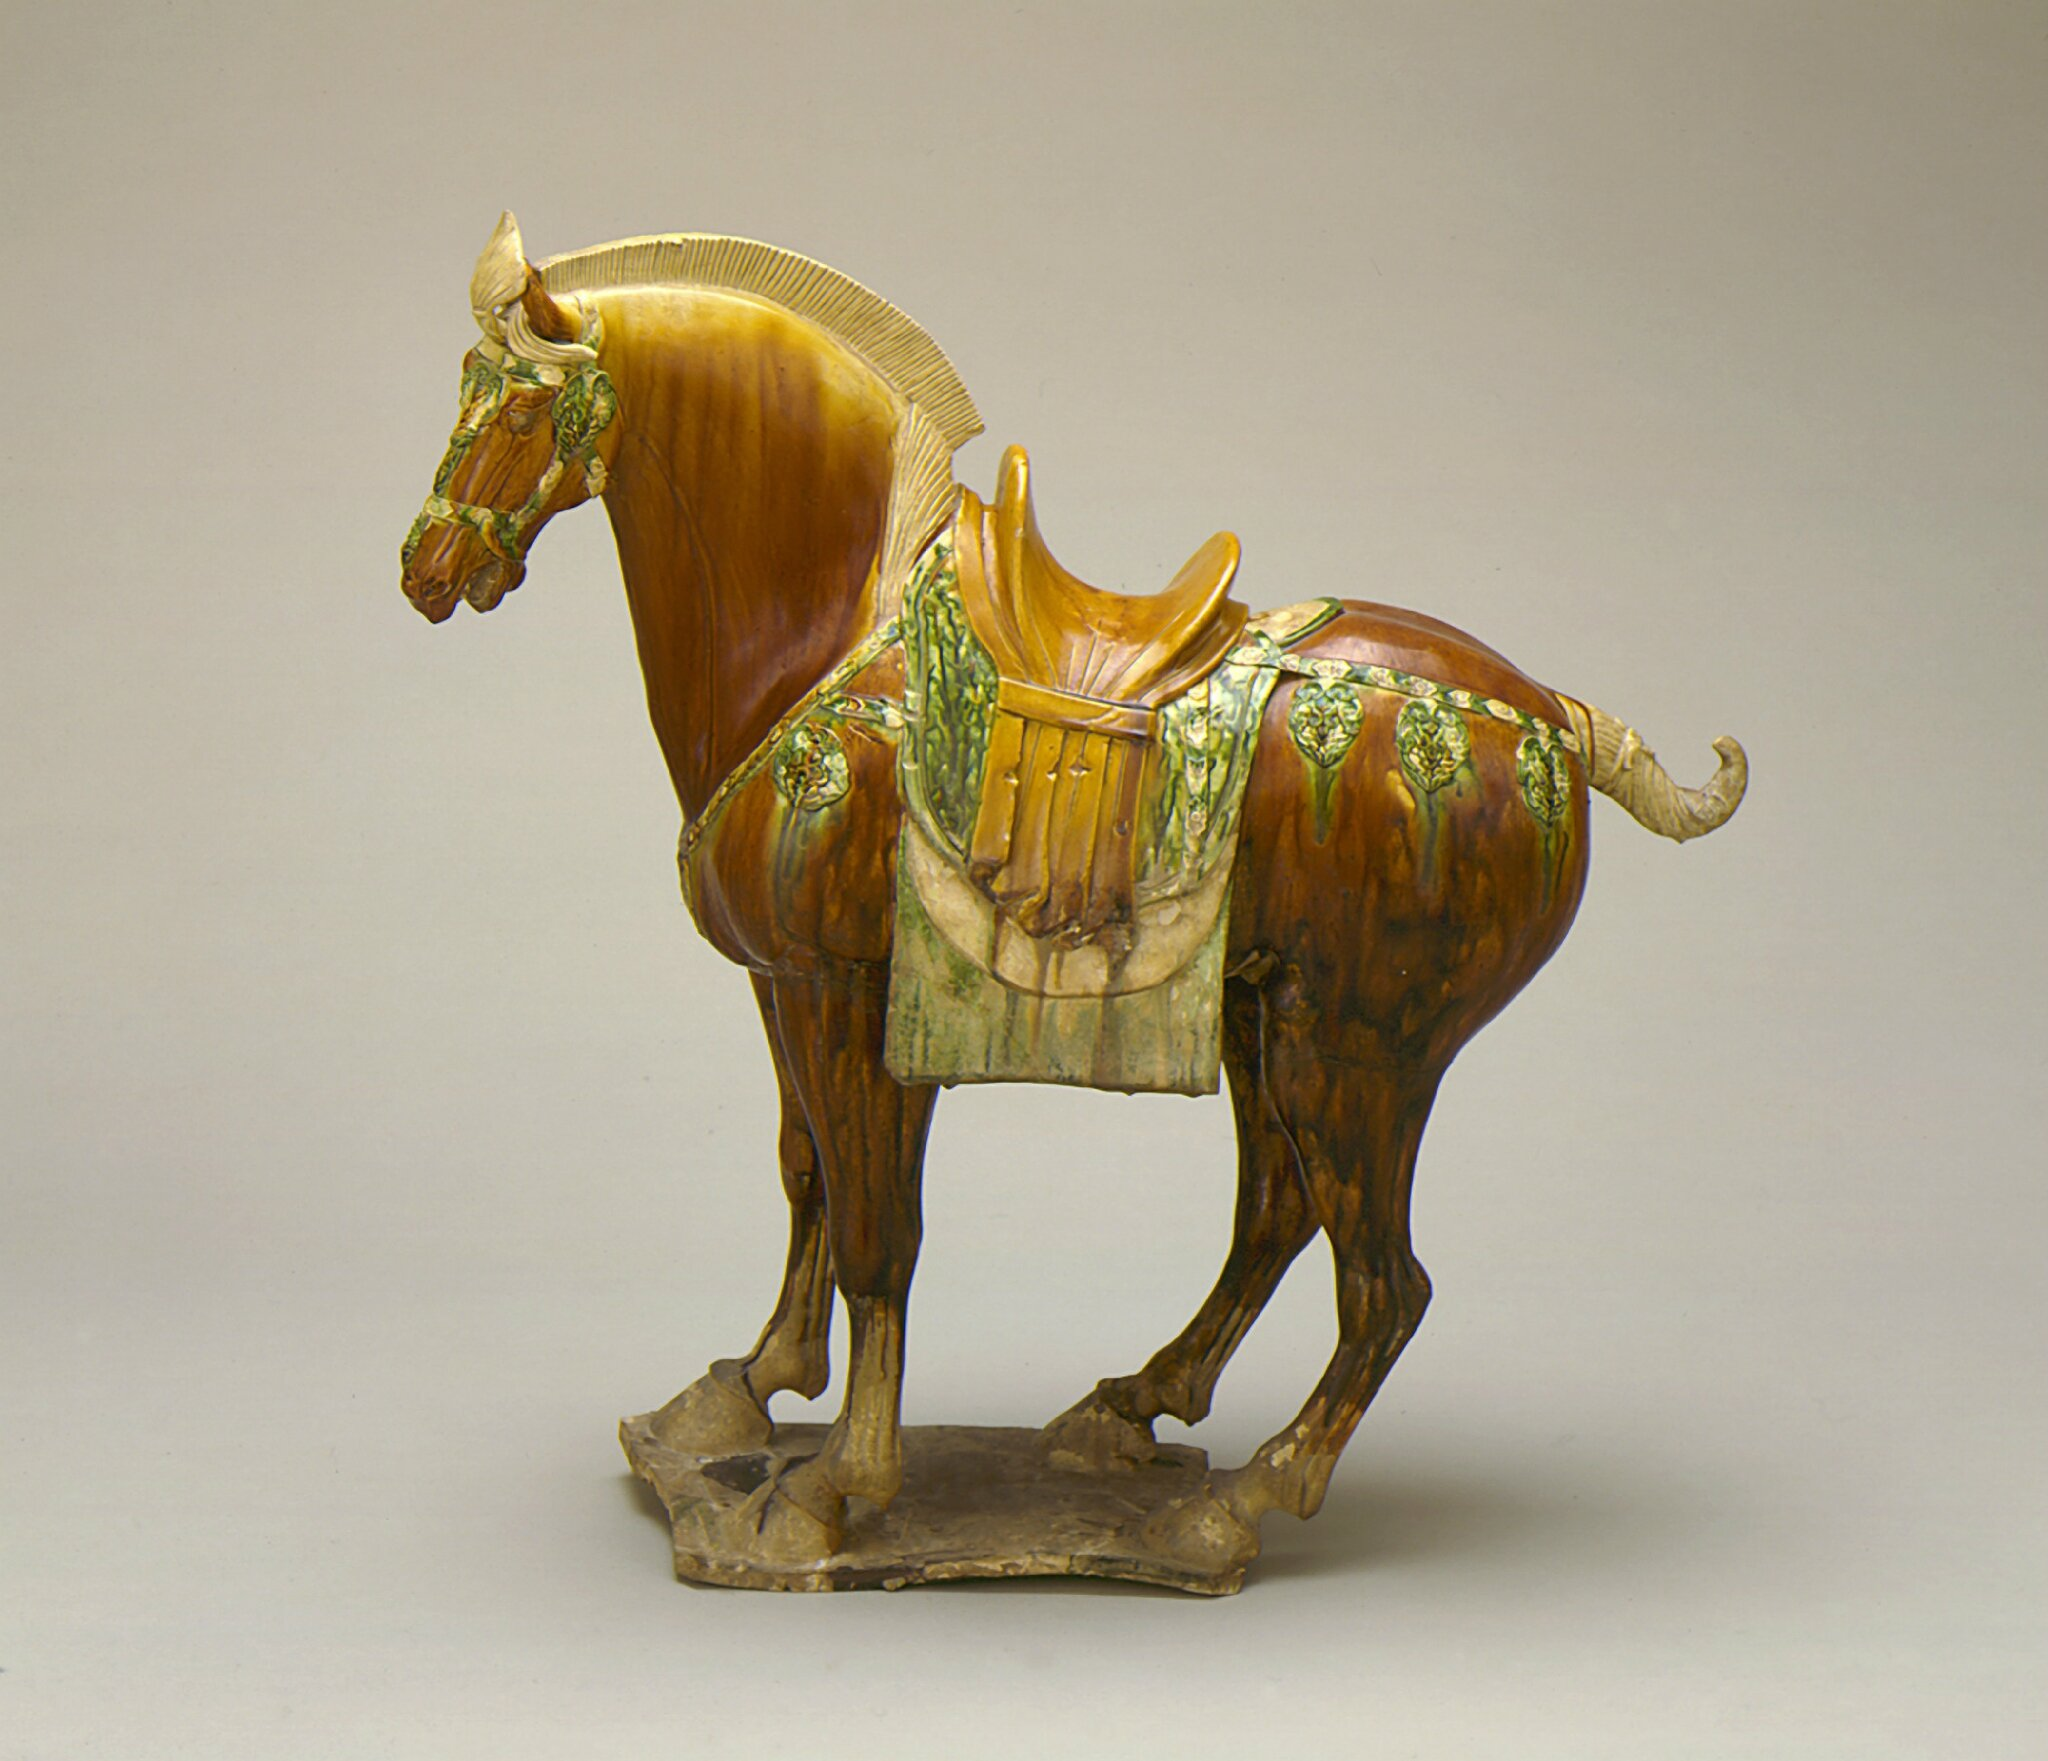 Funerary Sculpture of a Horse, China, Middle Tang dynasty, about 700-800